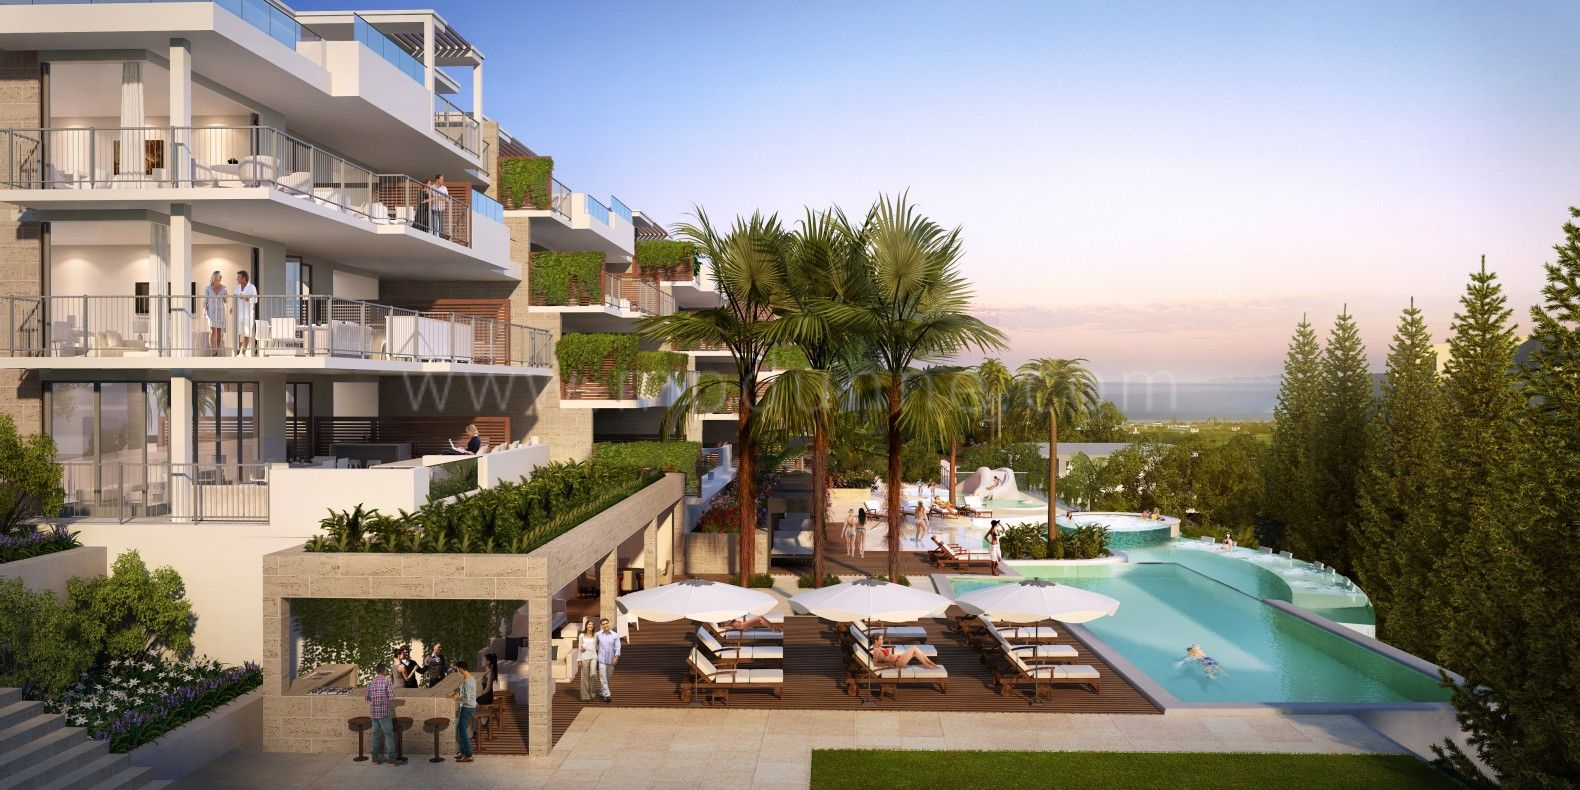 Development in Cala de Mijas, Mijas Costa